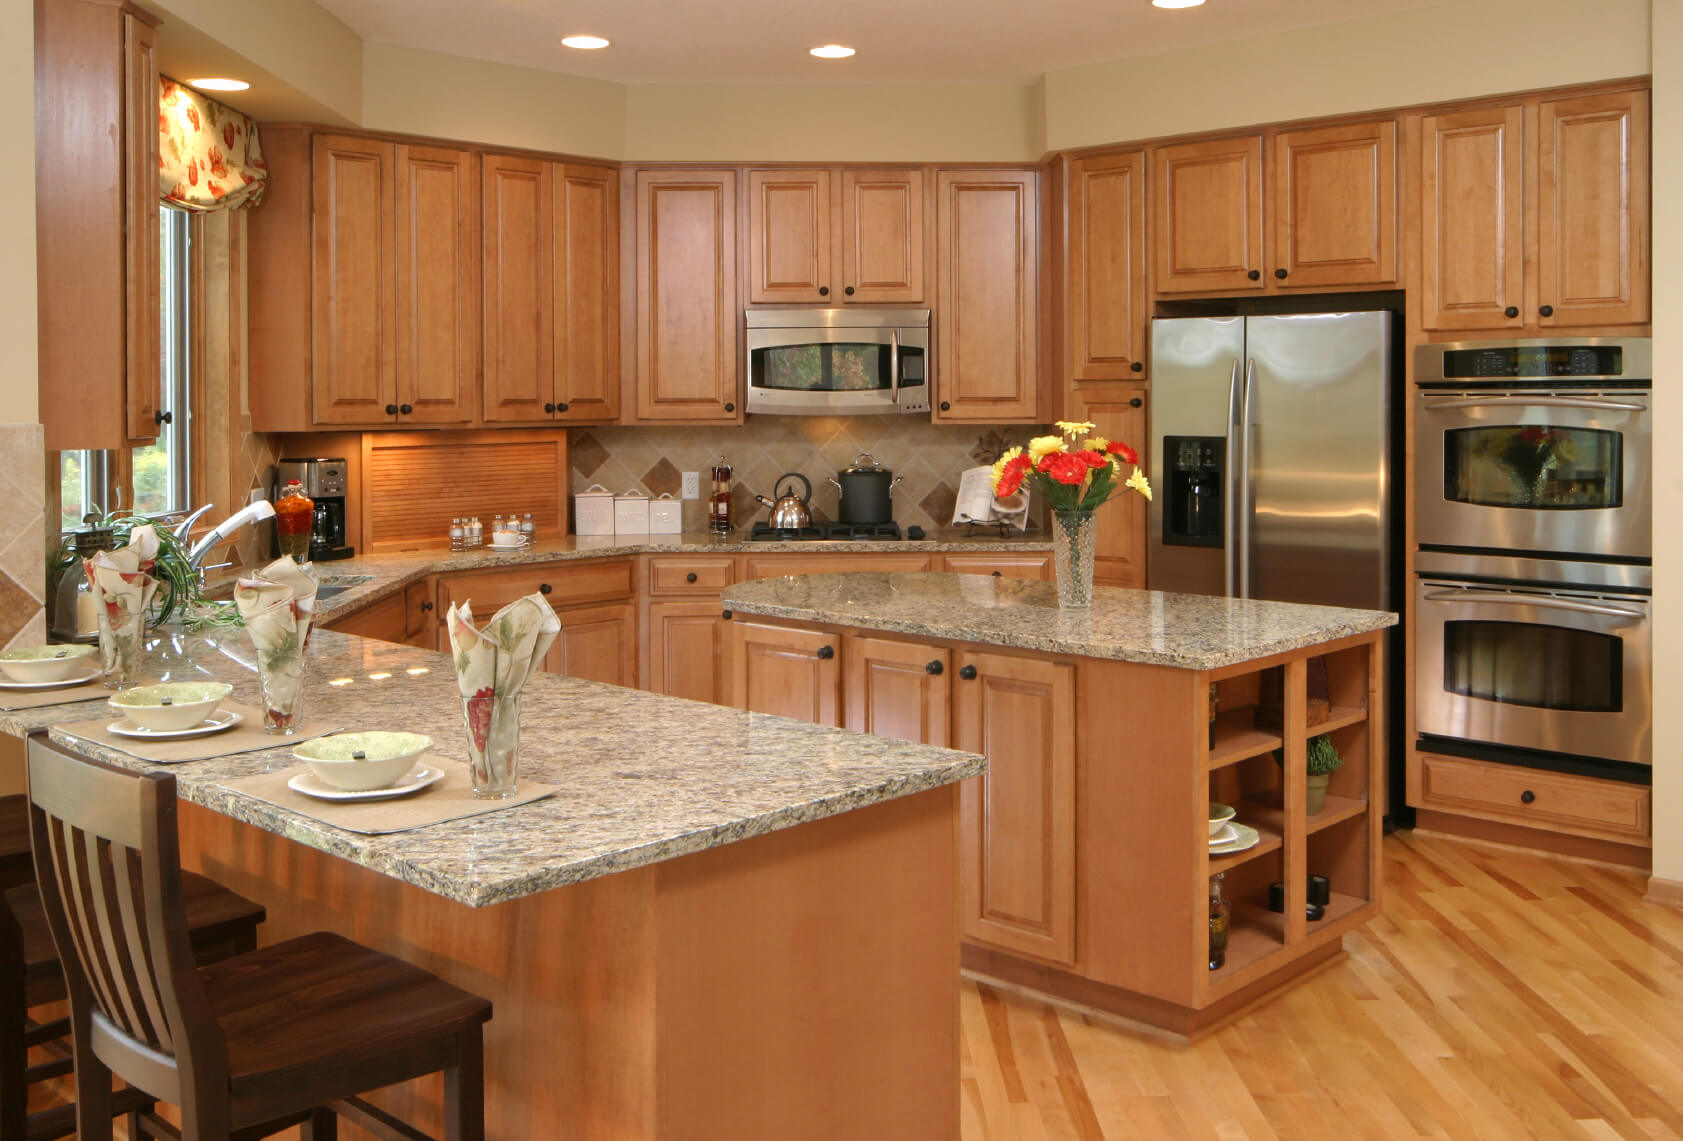 u shaped kitchen designs cabinets for kitchen island Solidly U shaped kitchen here awash in warm natural wood tones from the floors